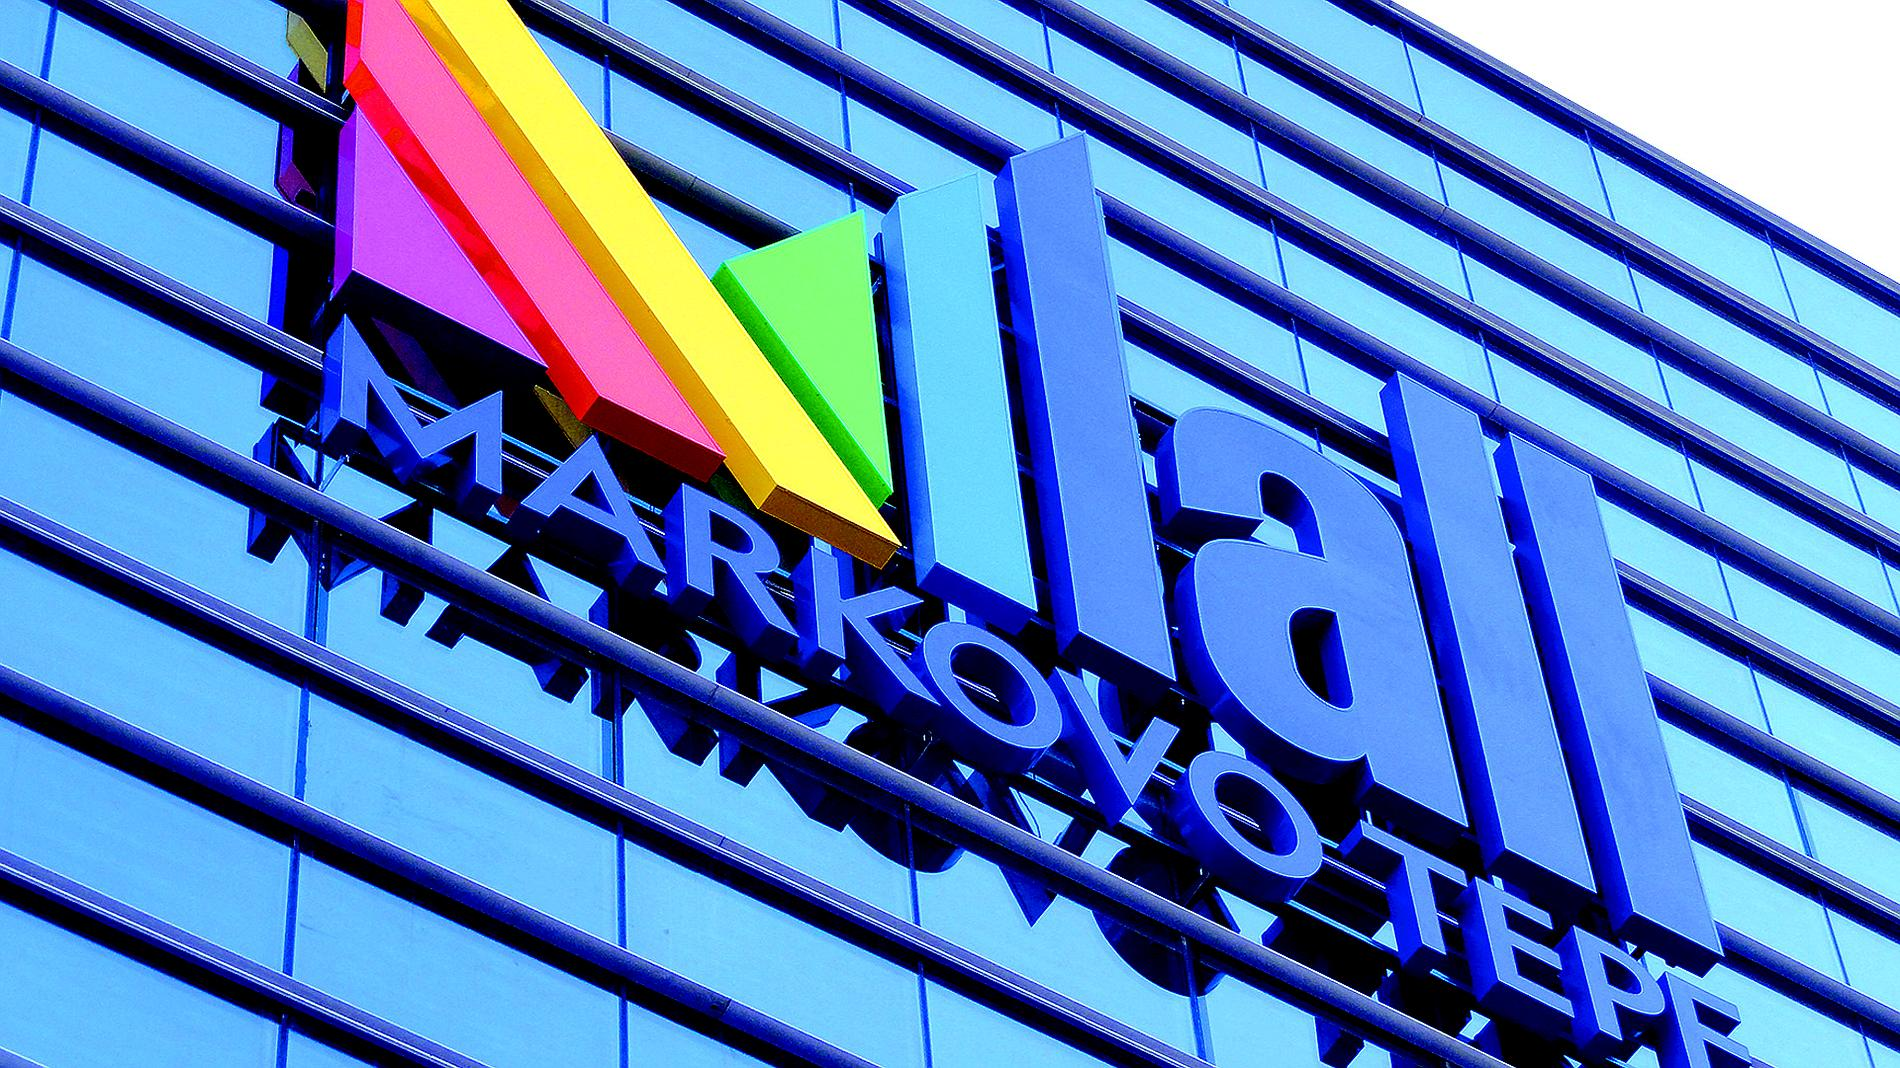 Mall Markovo Tepe - exterior signage, logo, channel letters